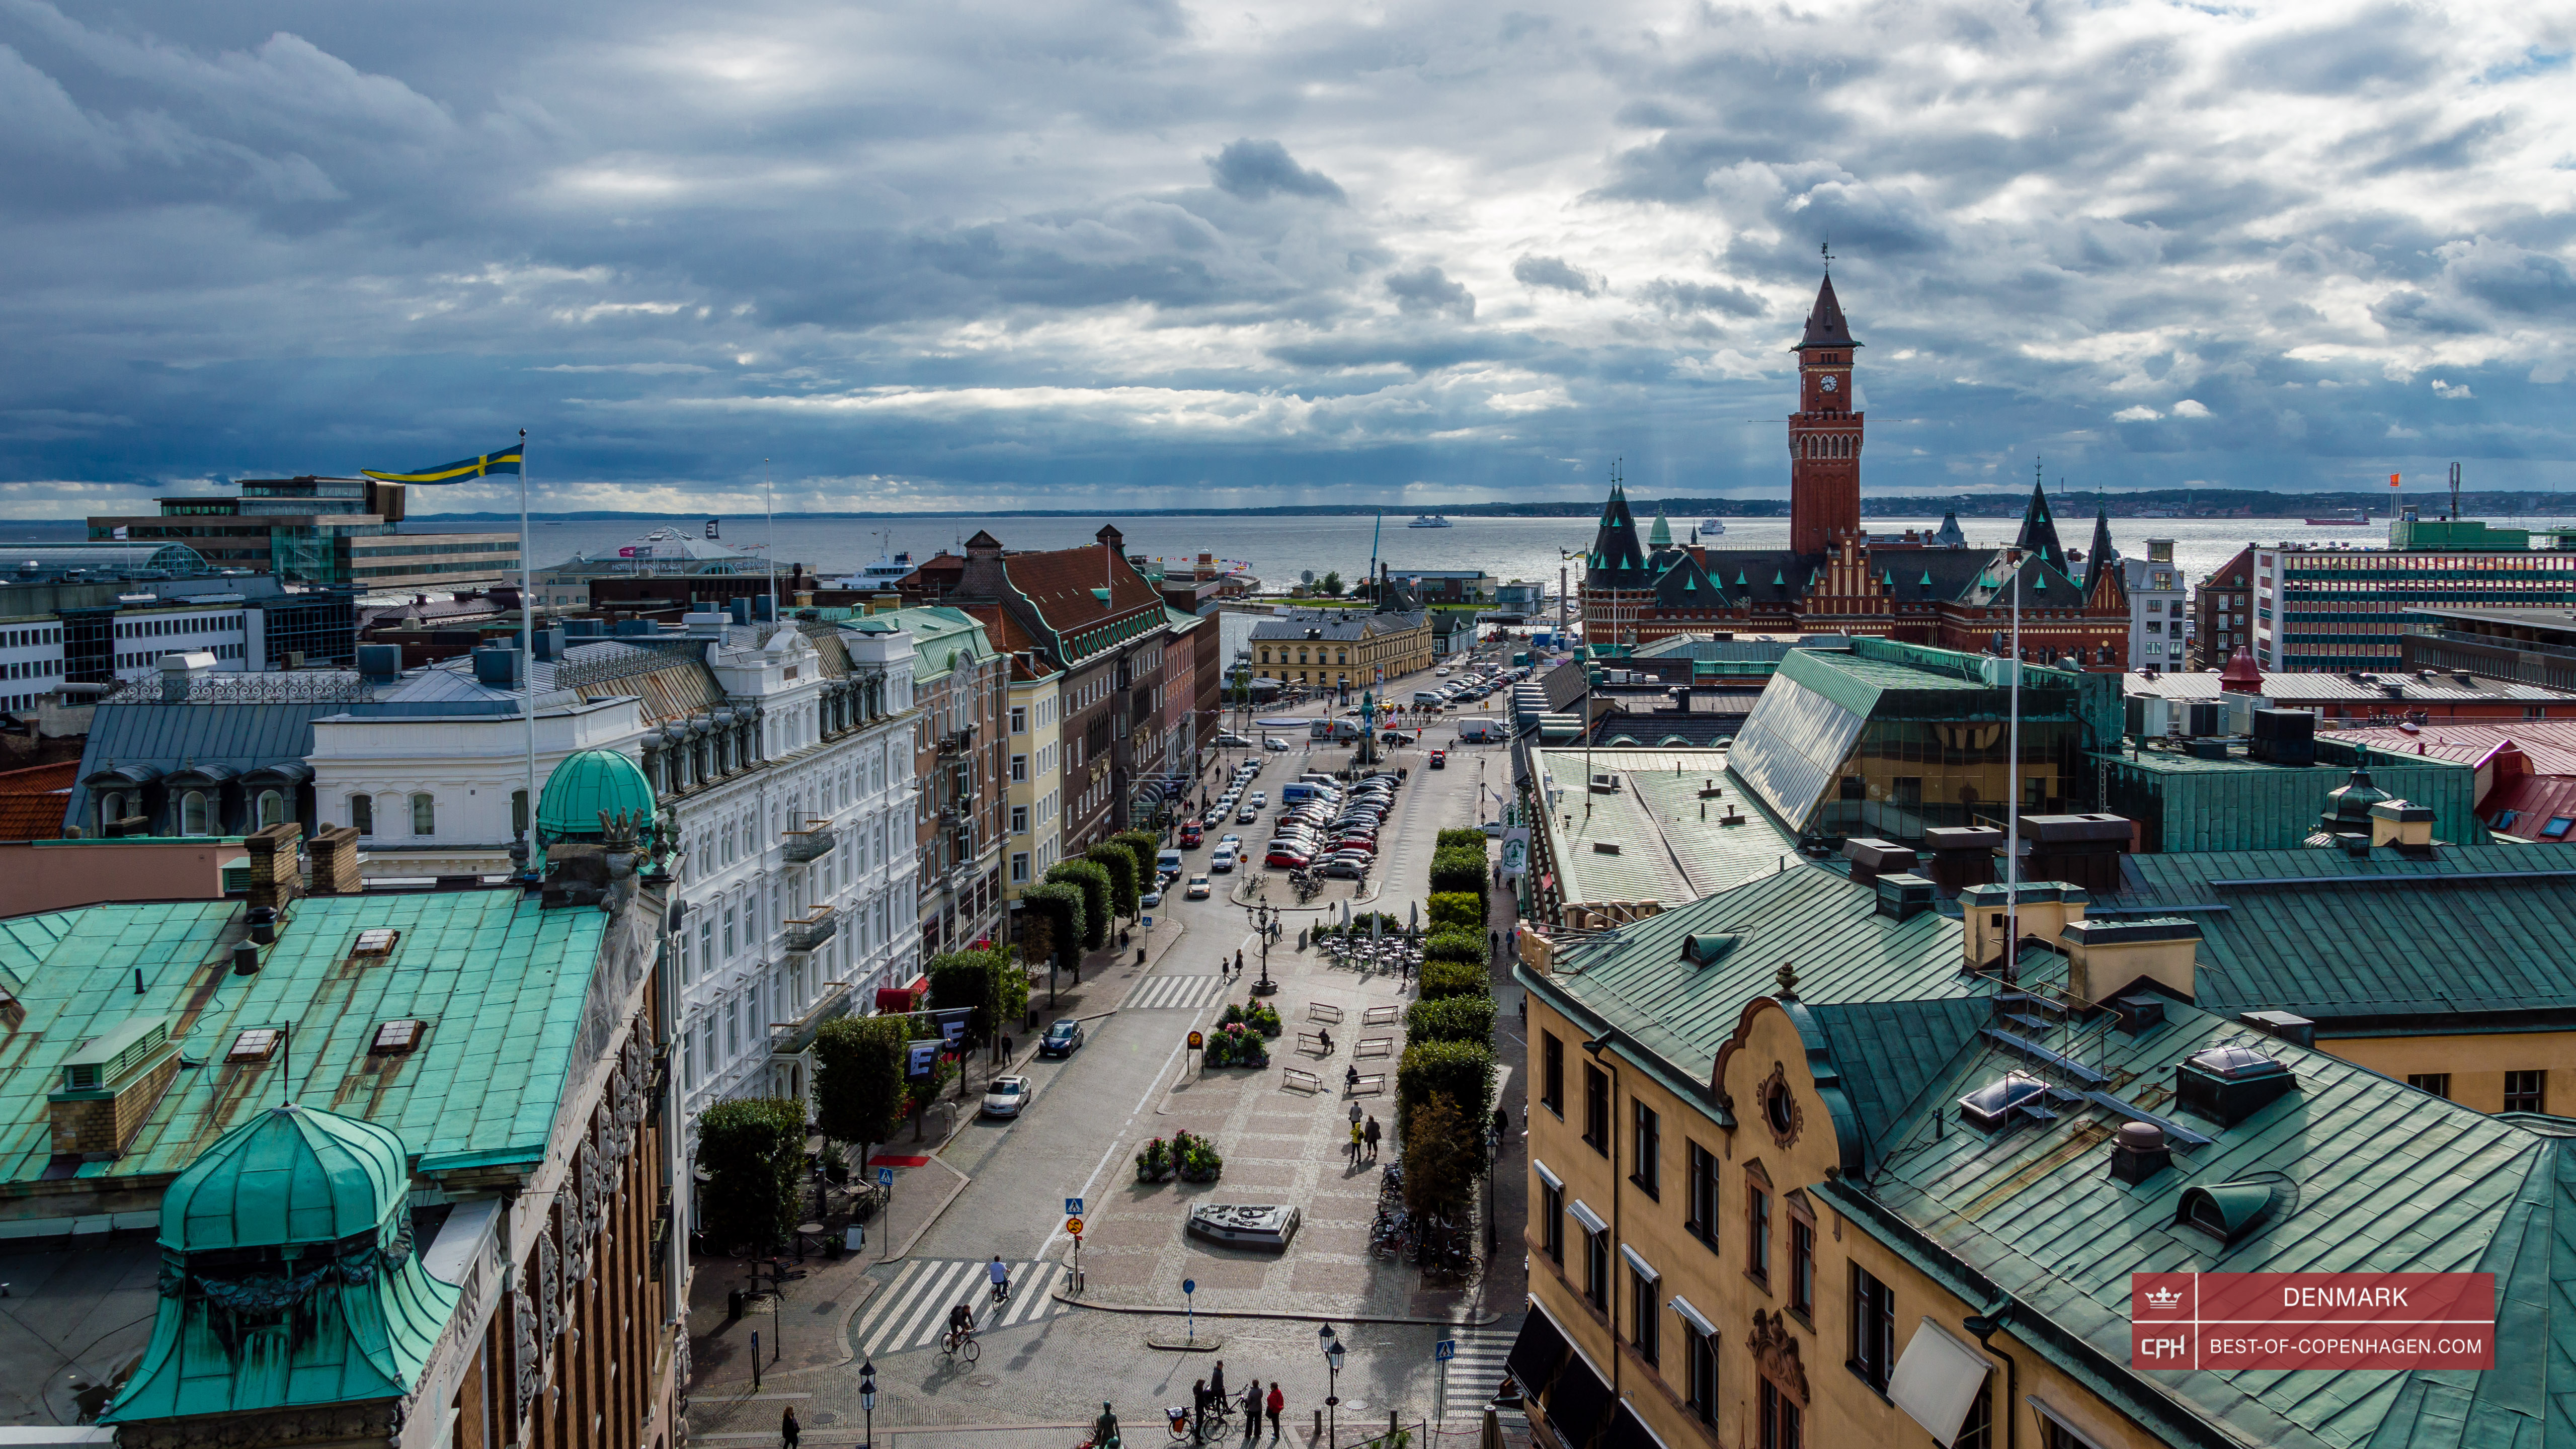 City center of Helsingborg, Sweden